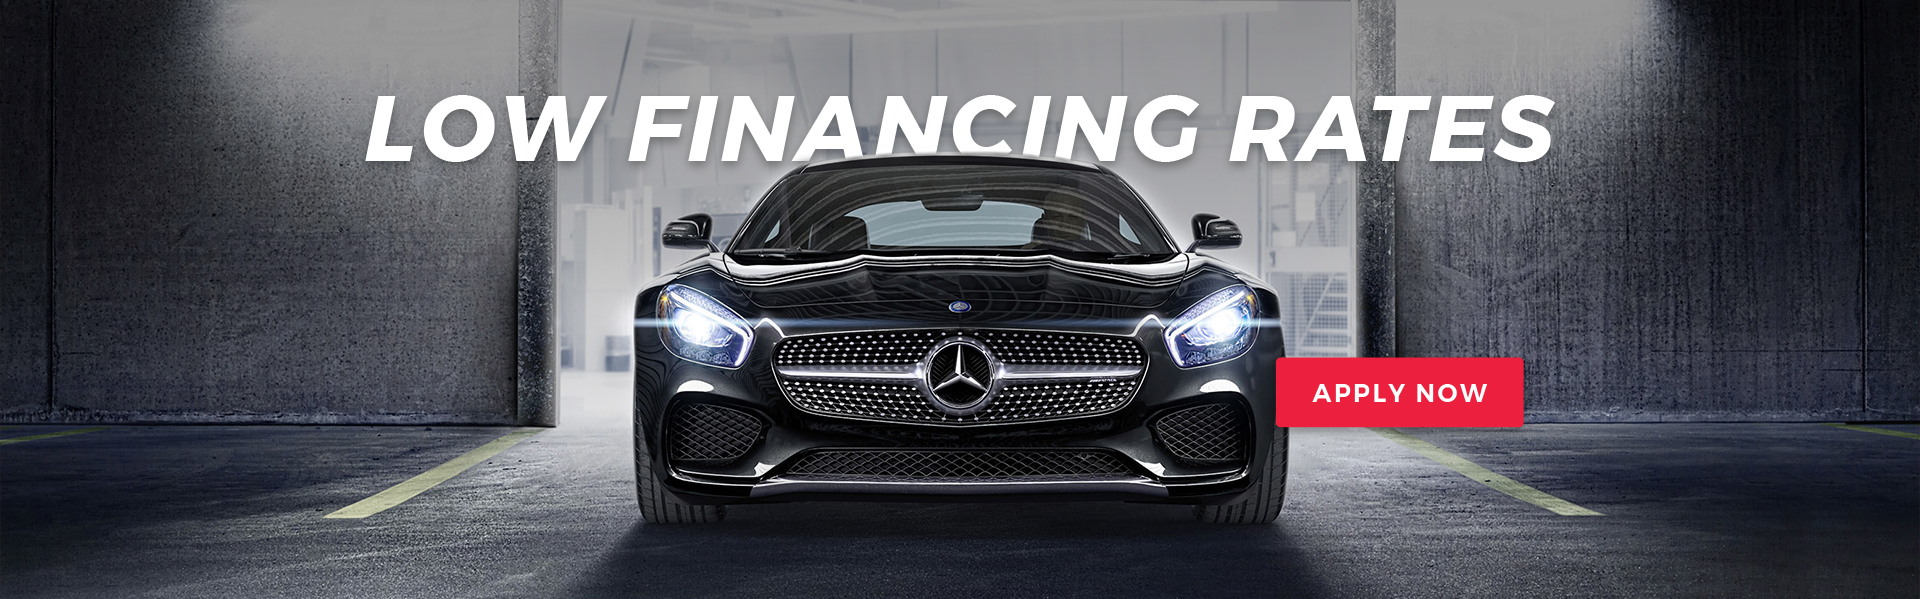 Low Financing Rates